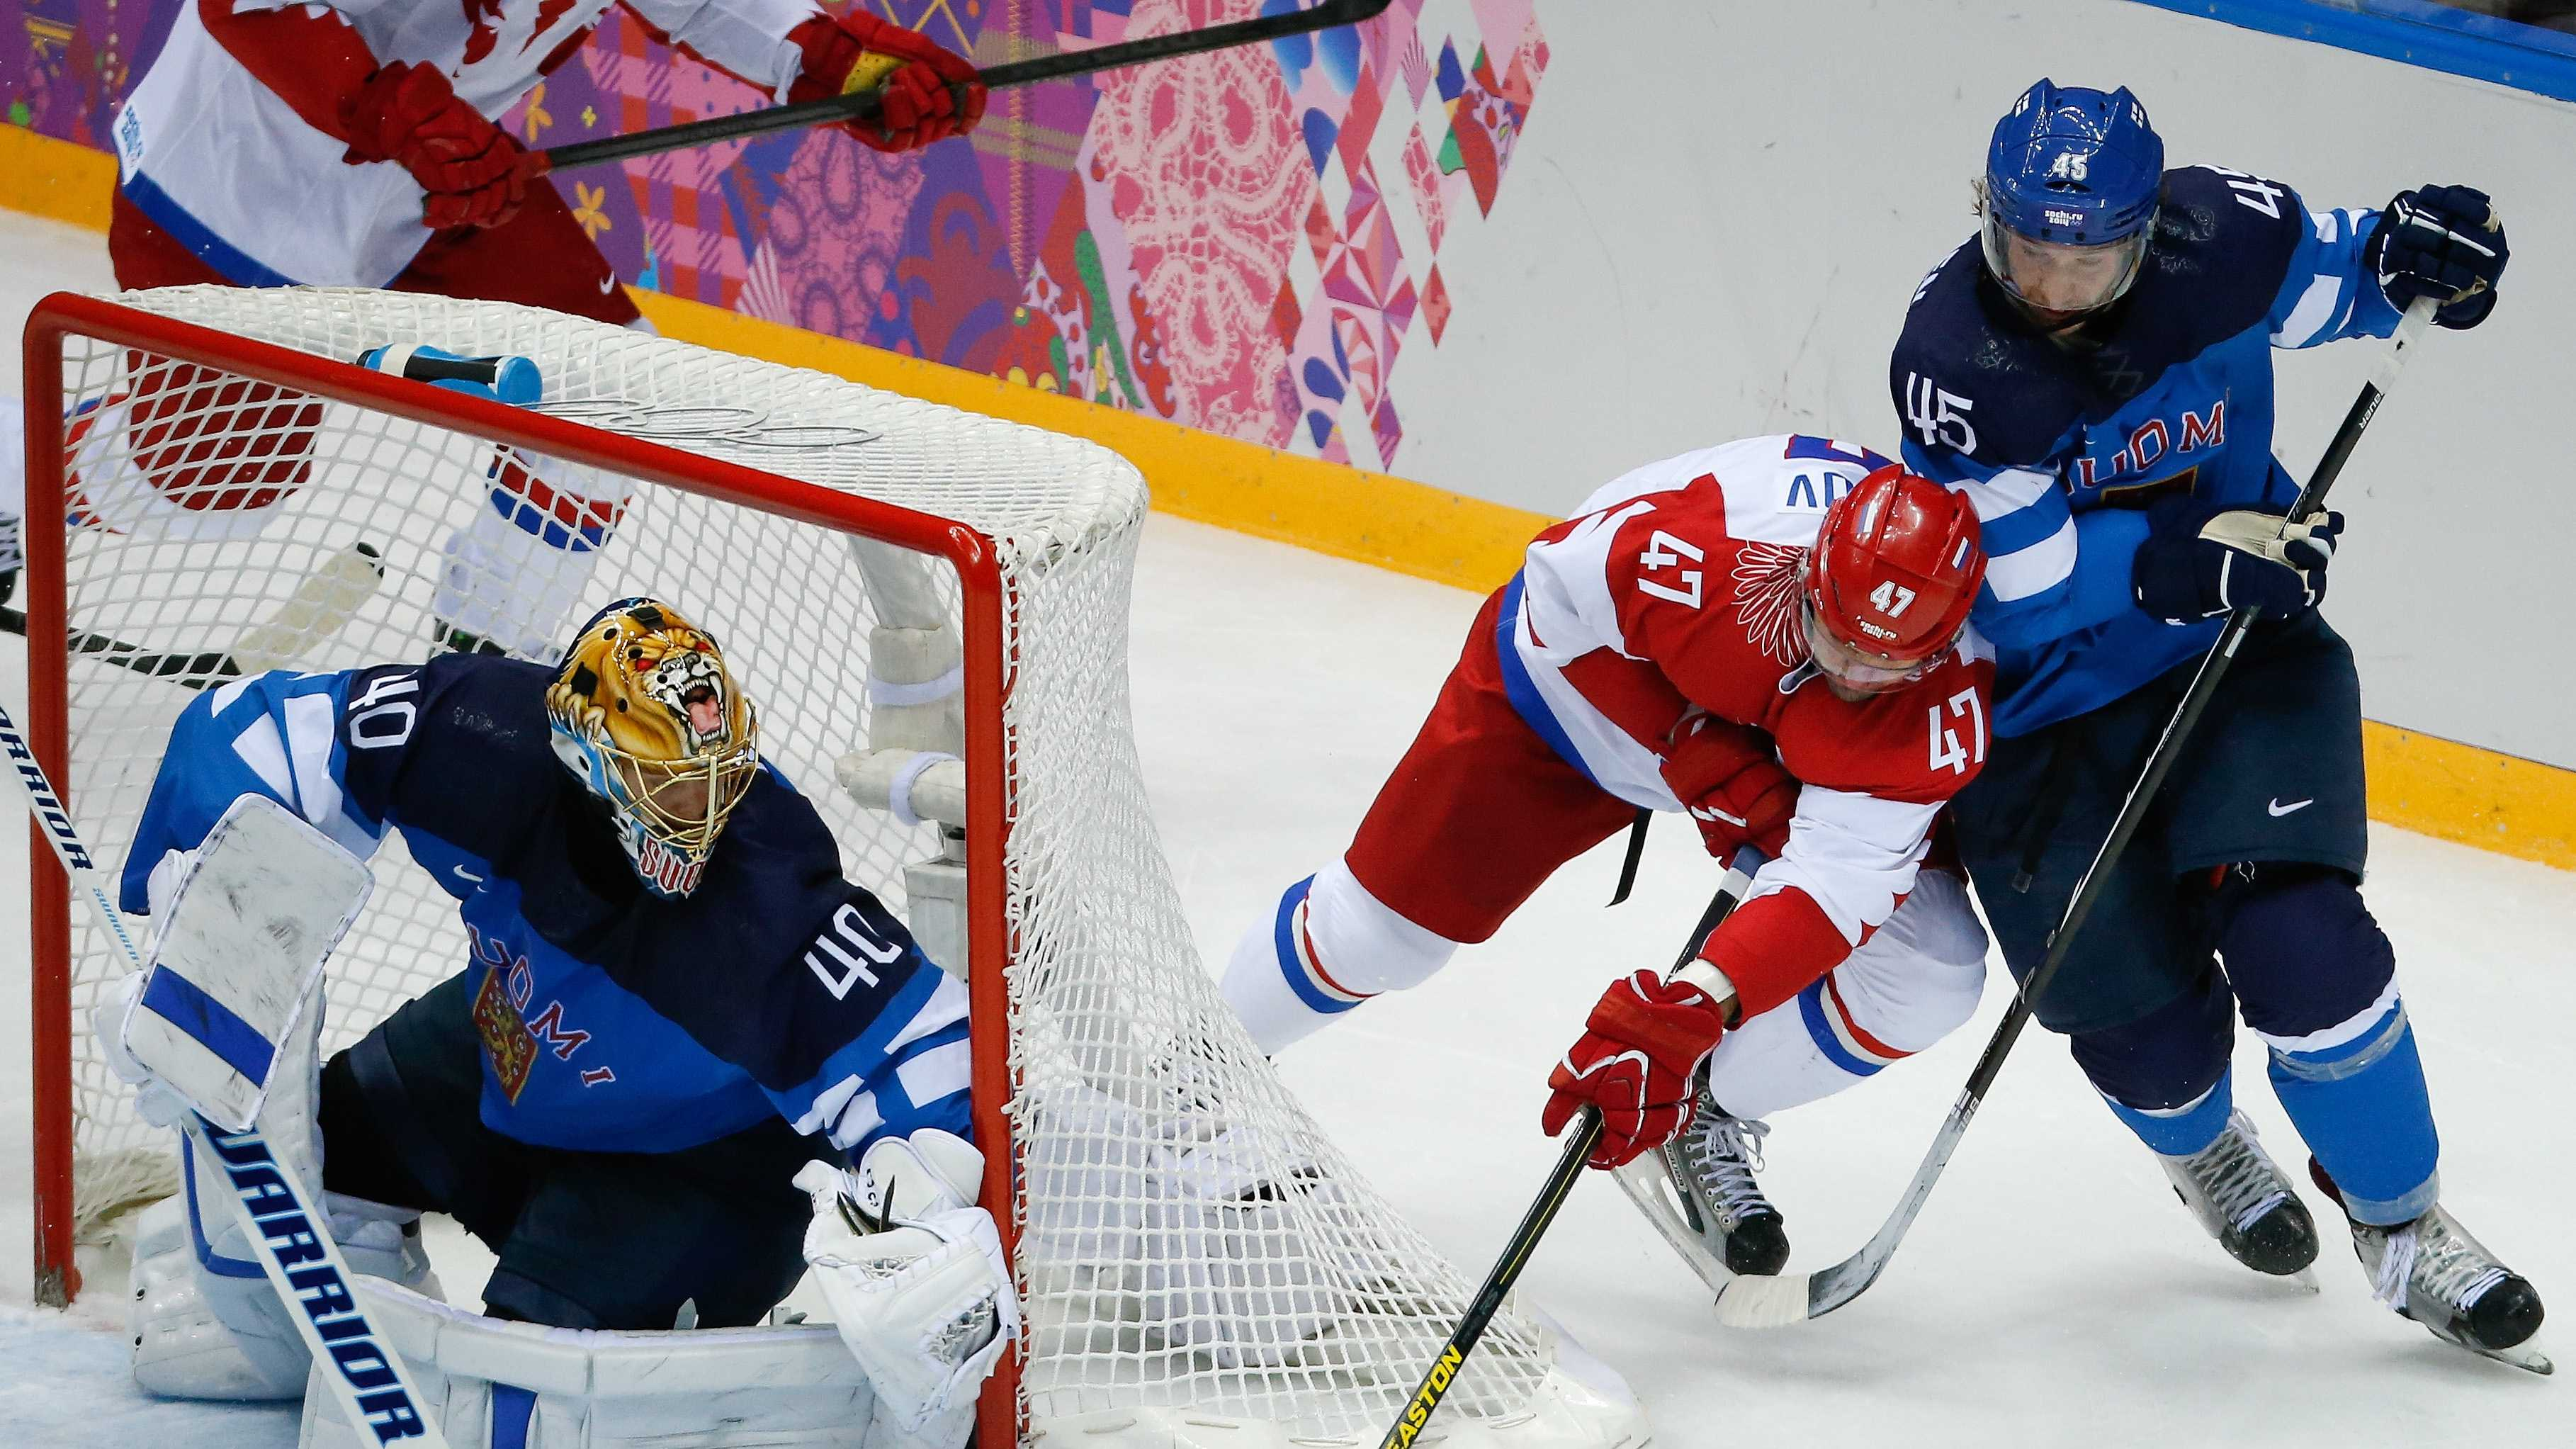 Russia forward Alexander Radulov tries to score against Finland defenseman Sami Vatanen and Finland goaltender Tuukka Rask in the second period of a men's quarterfinal ice hockey game at the 2014 Winter Olympics, Wednesday, Feb. 19, 2014, in Sochi, Russia.